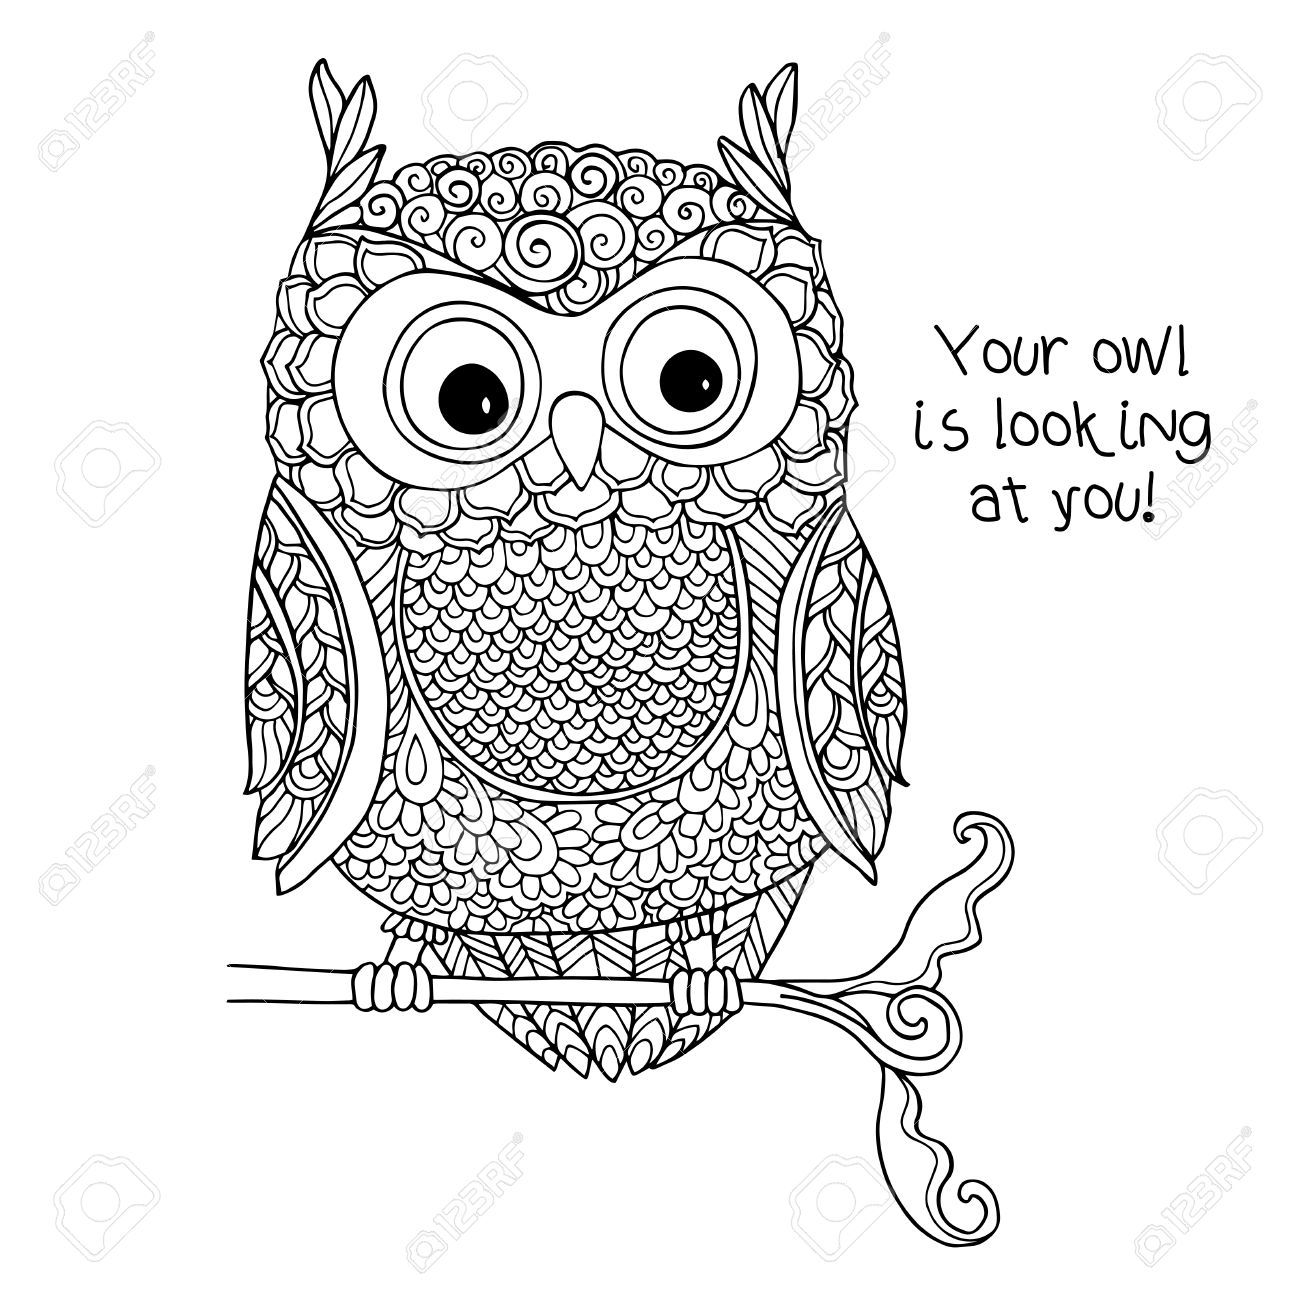 Coloring book outlines - Coloring Book For Adult And Older Children Coloring Page With Cute Owl Outline Drawing In Zentangle Style Buy This Stock Vector On Shutterstock Find